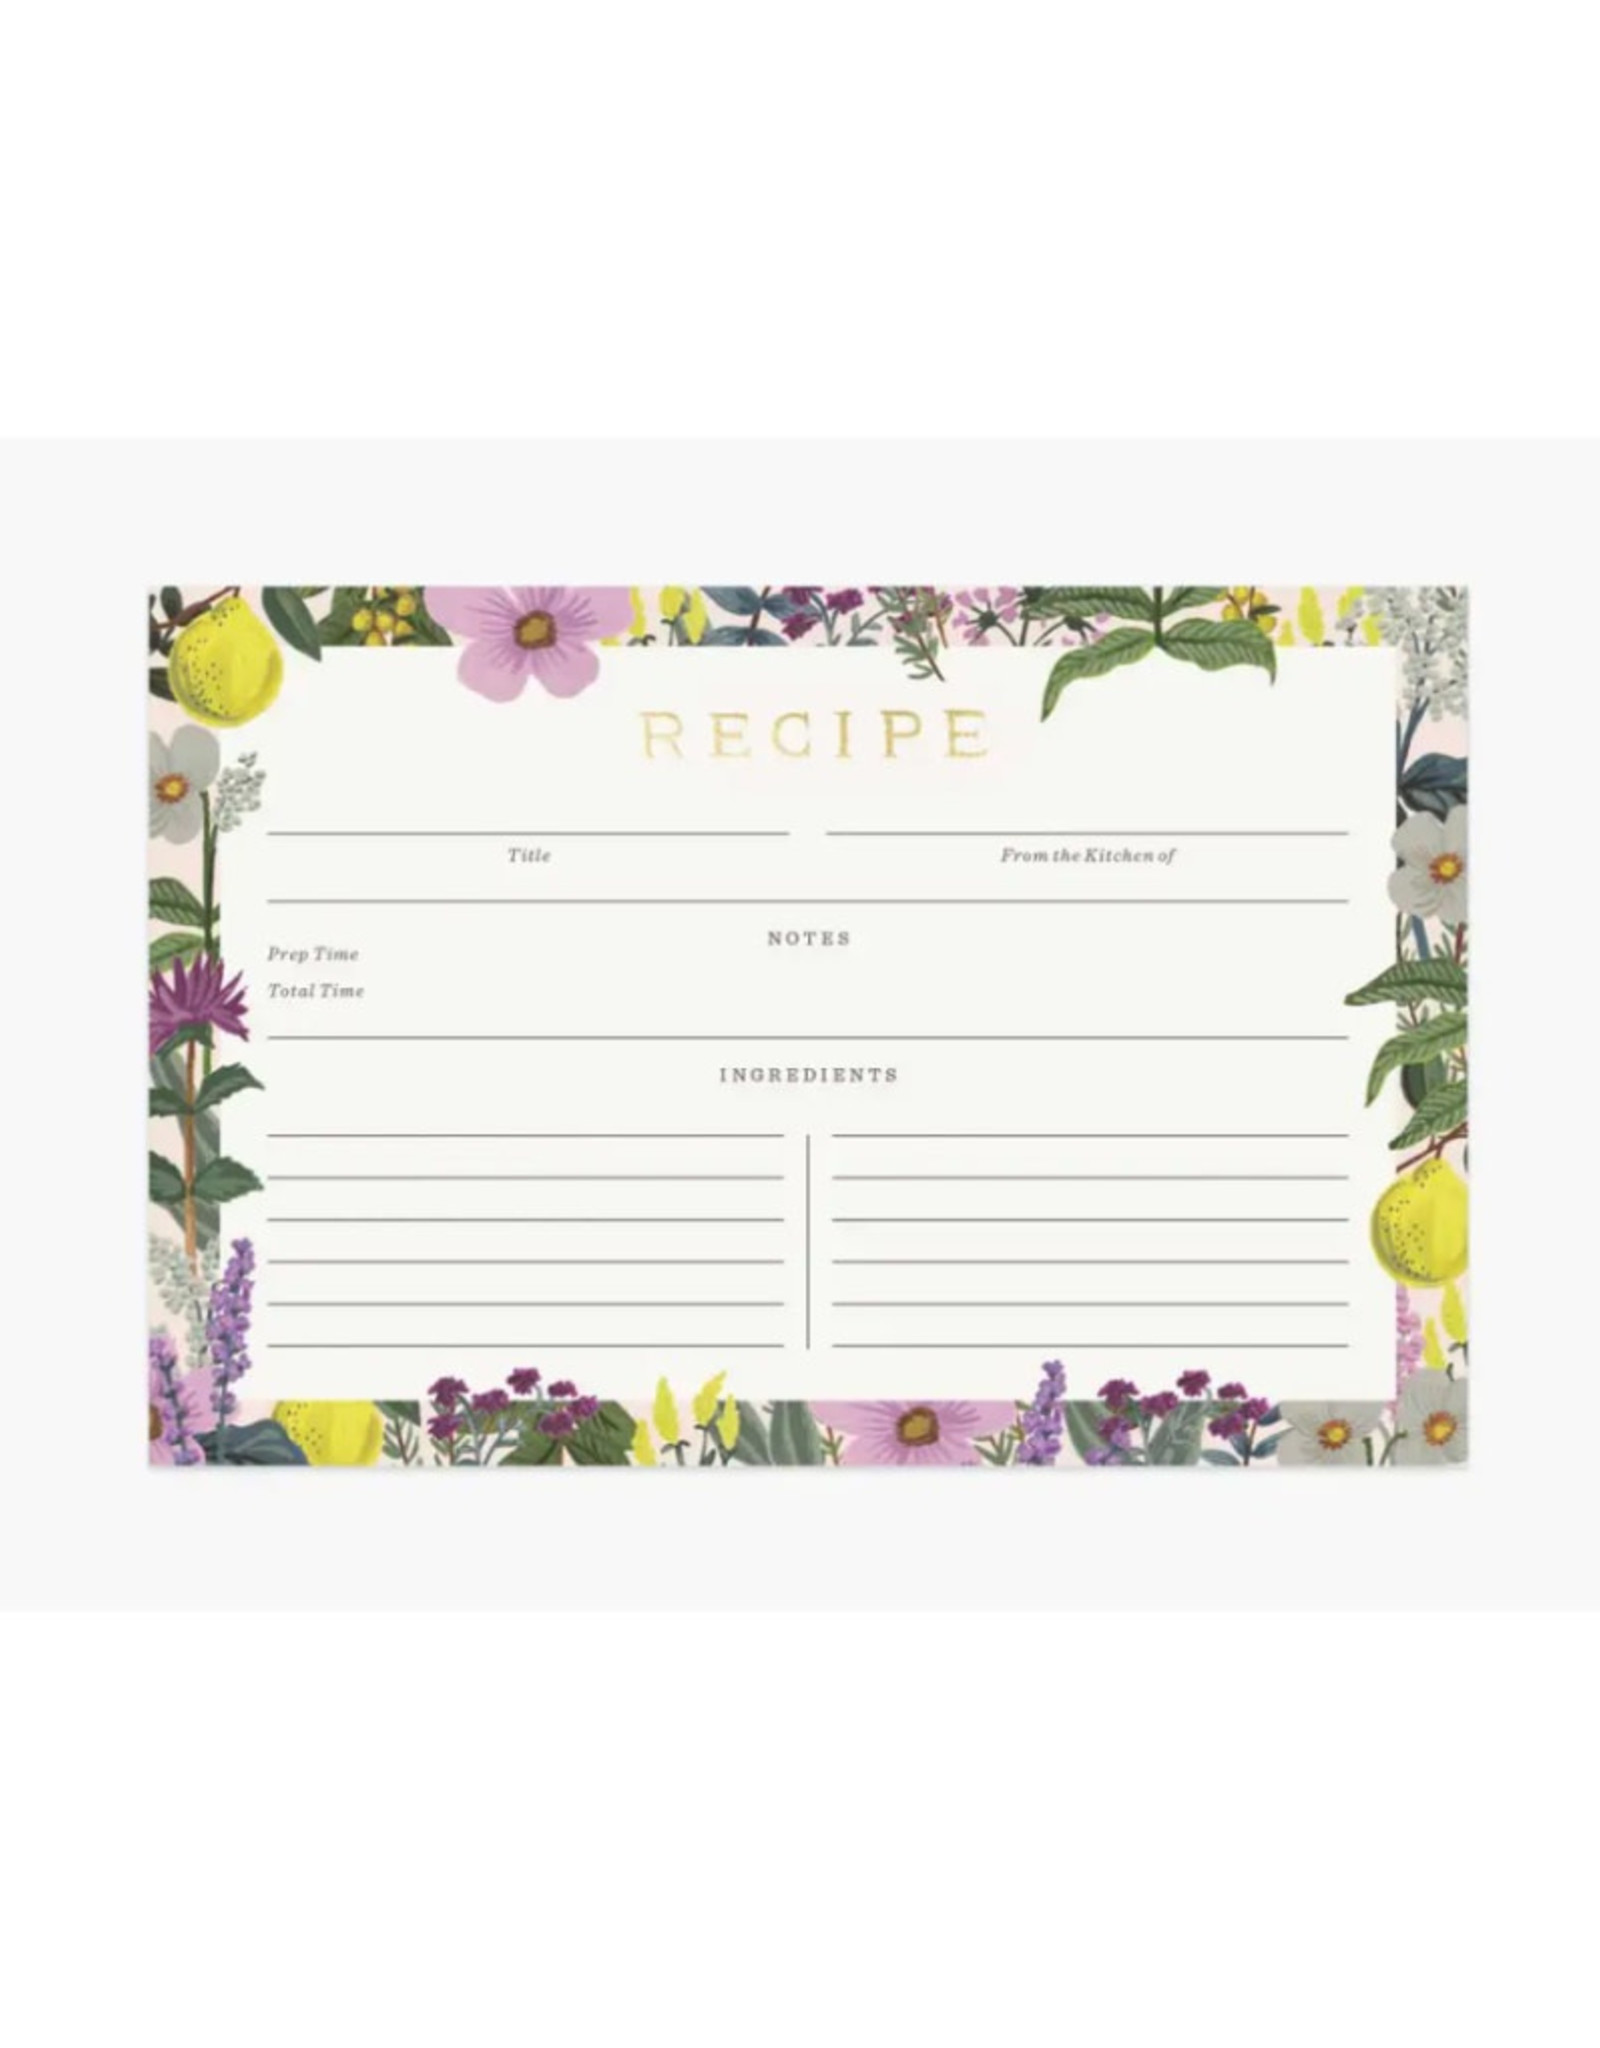 Recipe Cards - Herb Garden